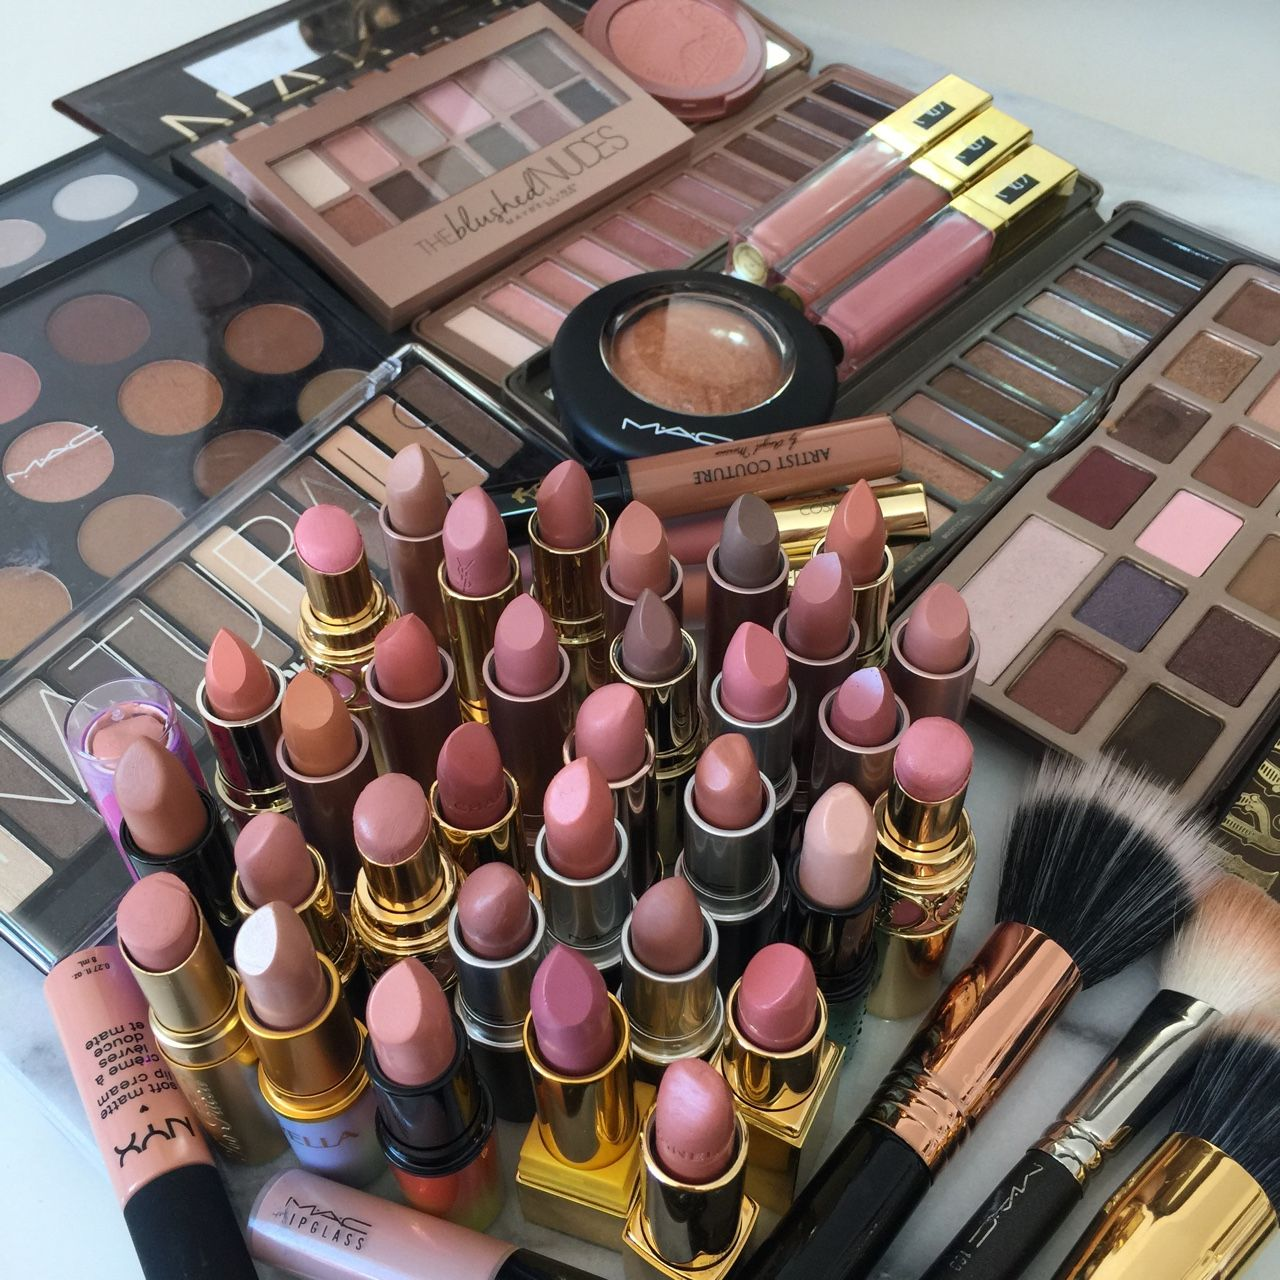 www.louboutins-and-chanel.tumblr | ╳makeup/beauty